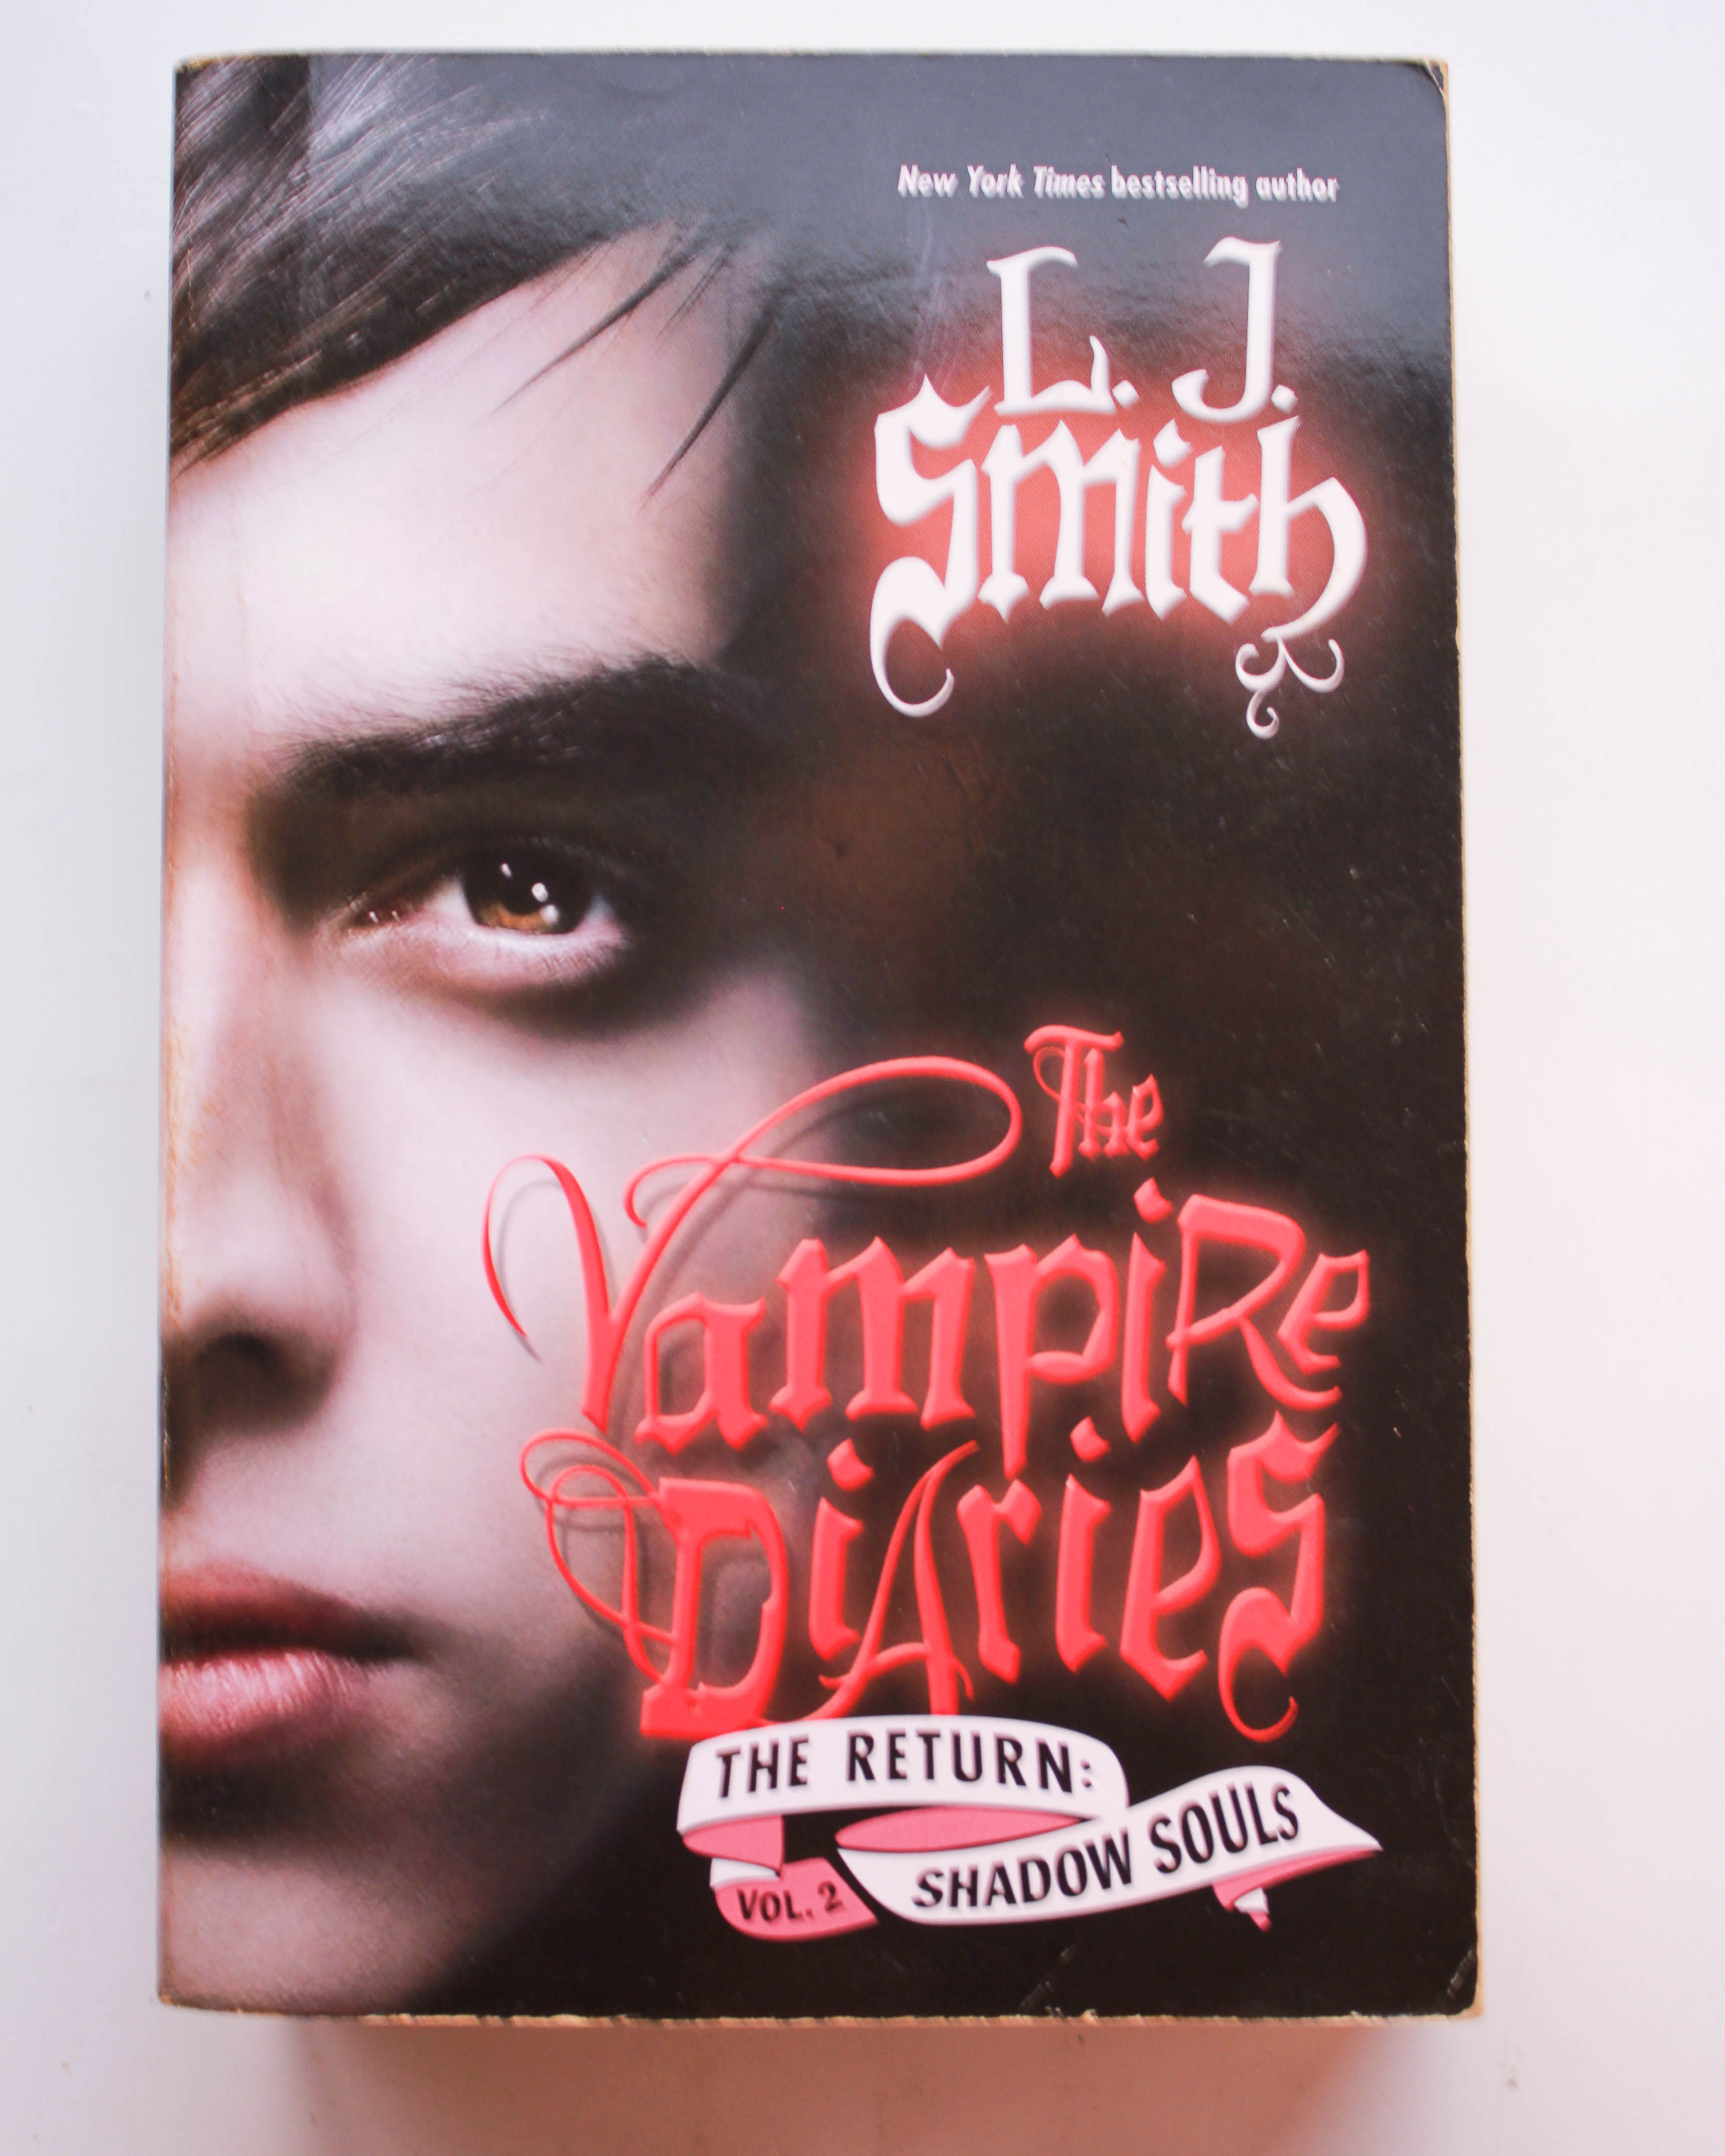 The Vampire Diaries Vol. 2 The Return: Shadow Souls